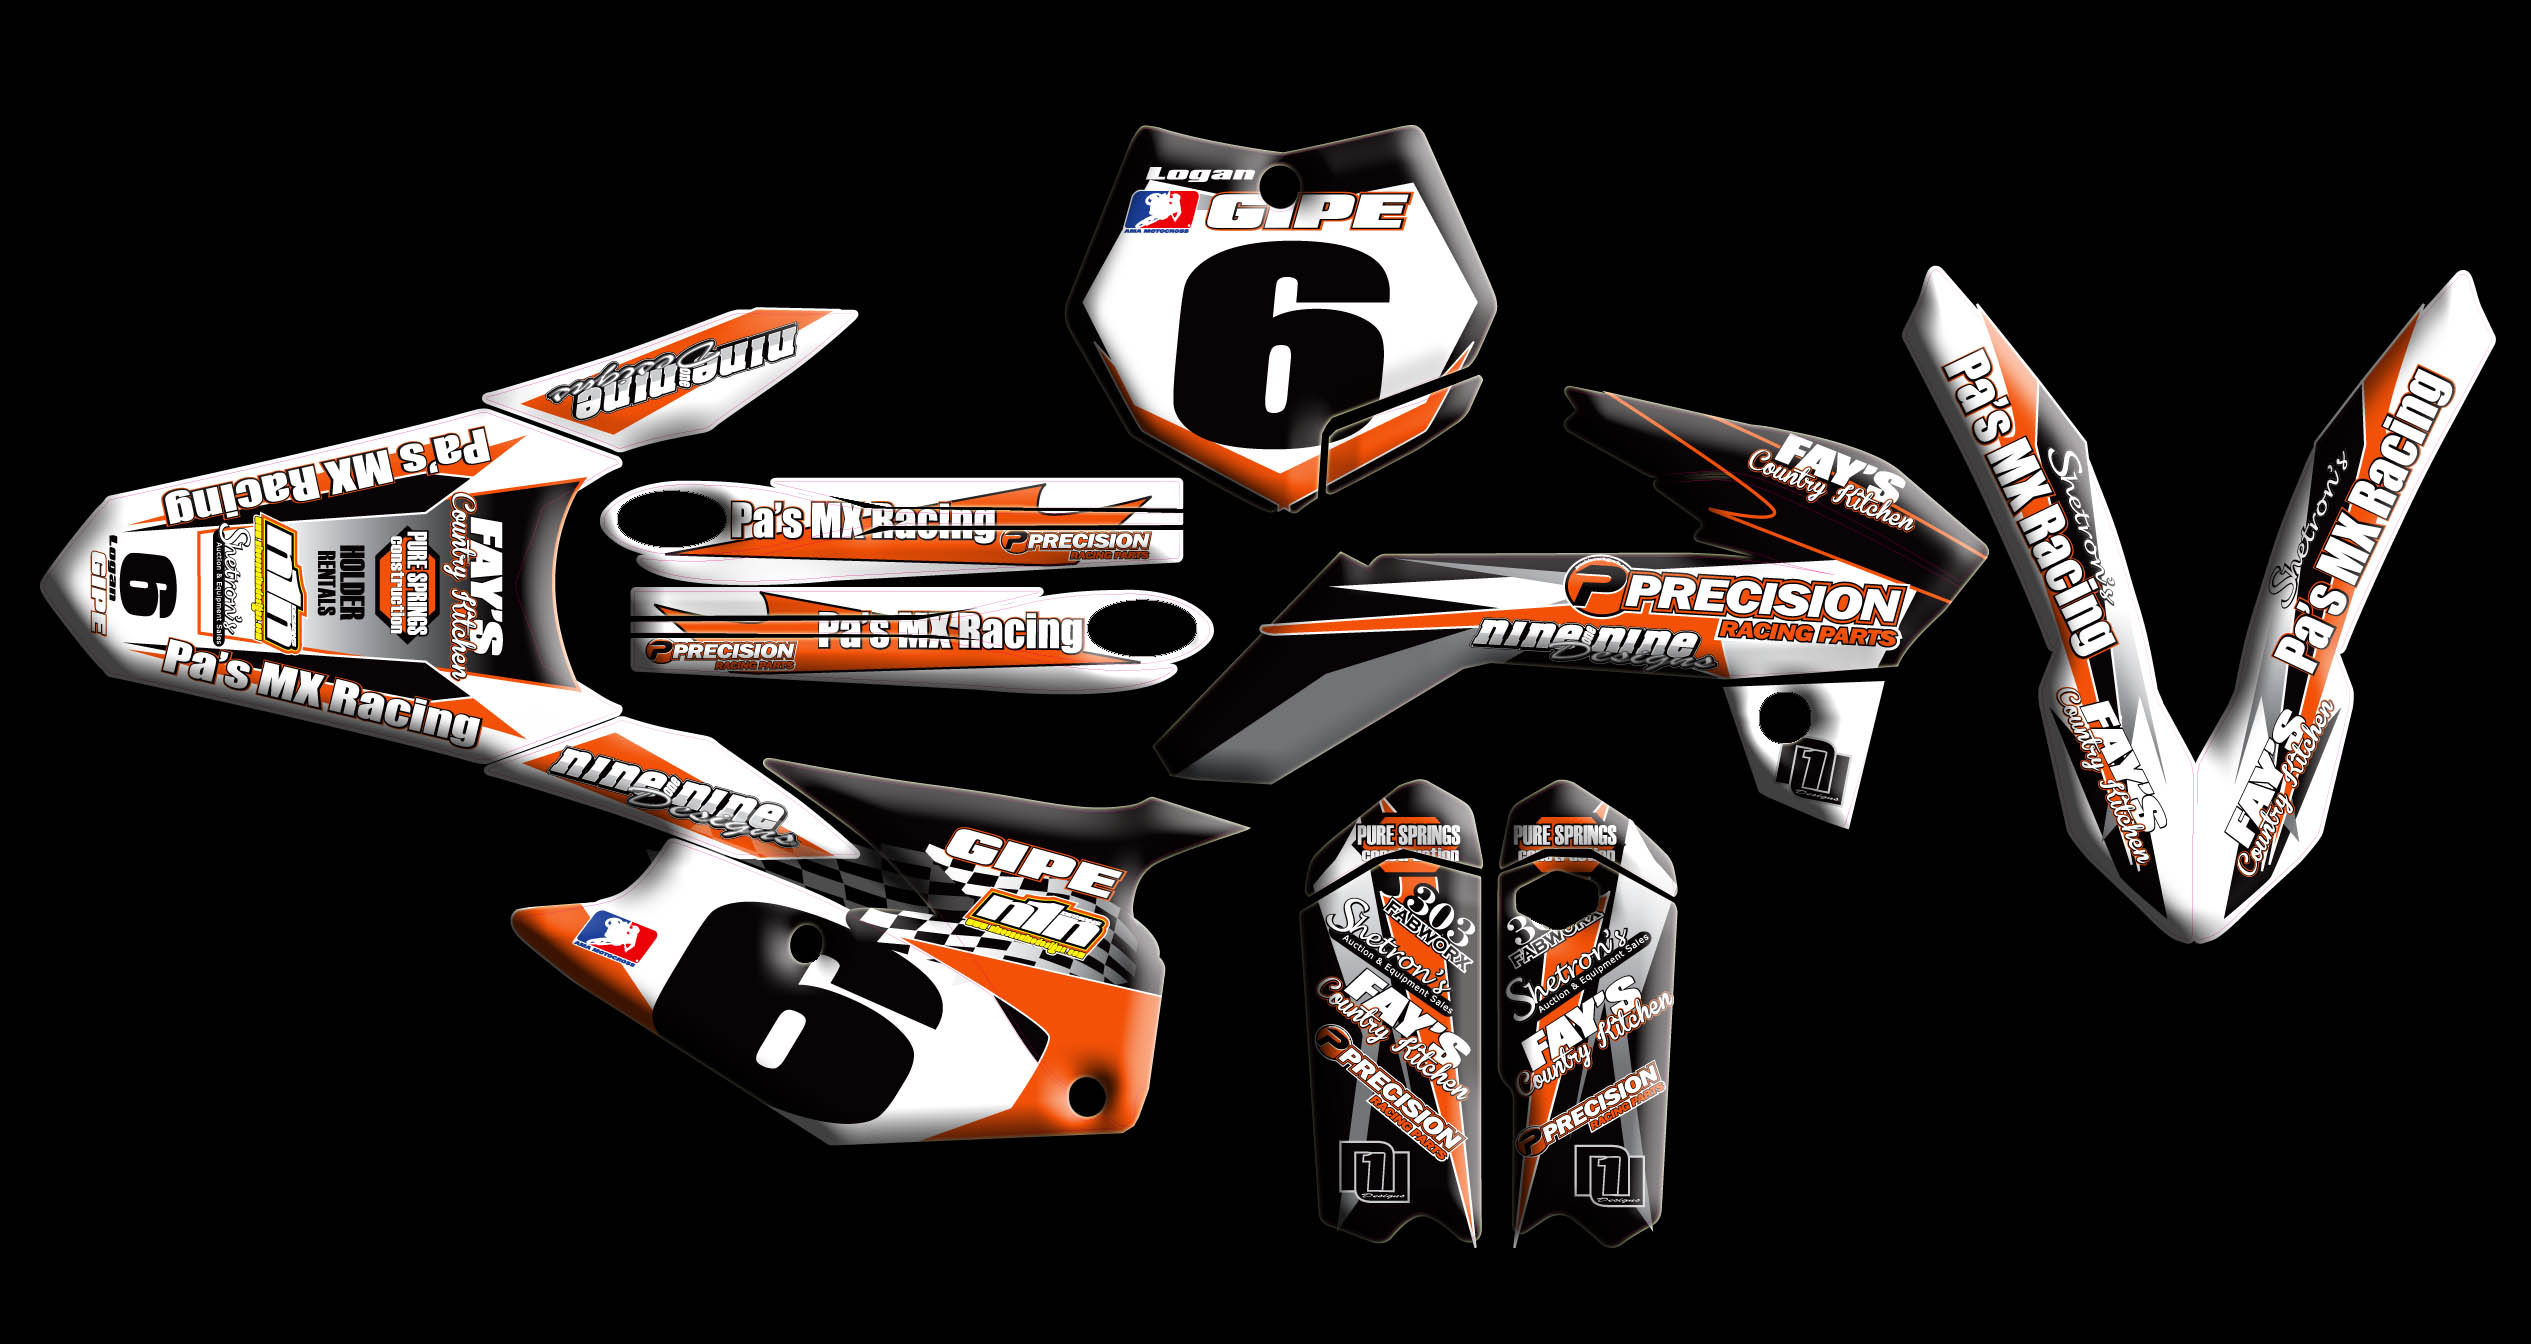 ktm full kits : :: nineonenine designs ::